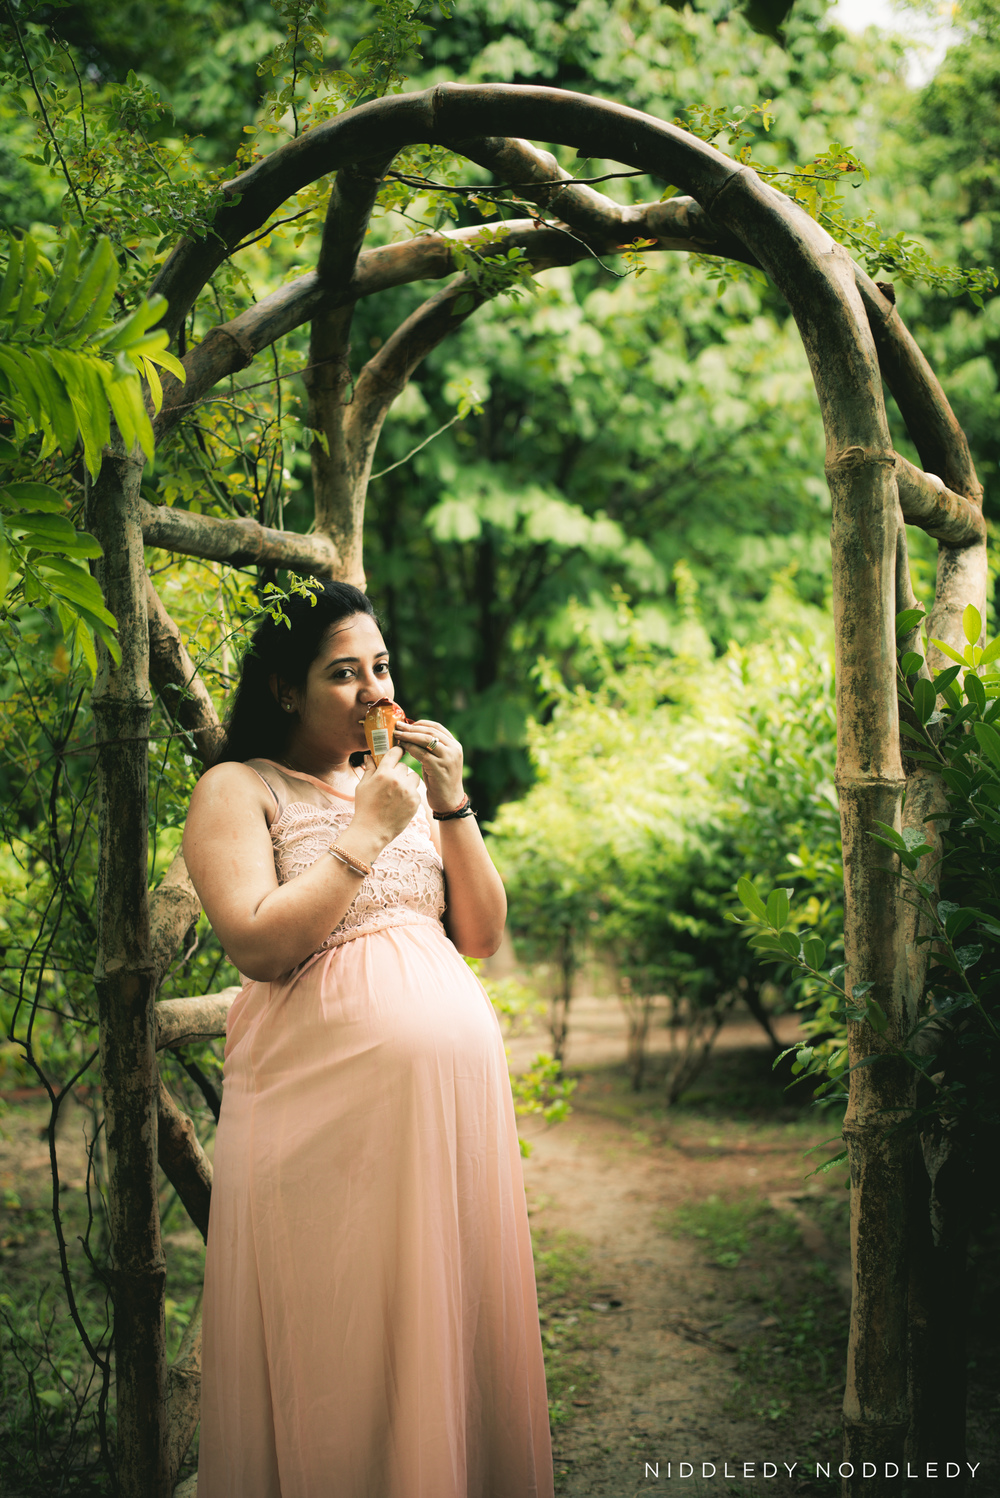 Ajmani's Maternity Photoshoot ❤ NiddledyNoddledy.com ~ Bumps to Babies Photography, Calcutta - 09.jpg